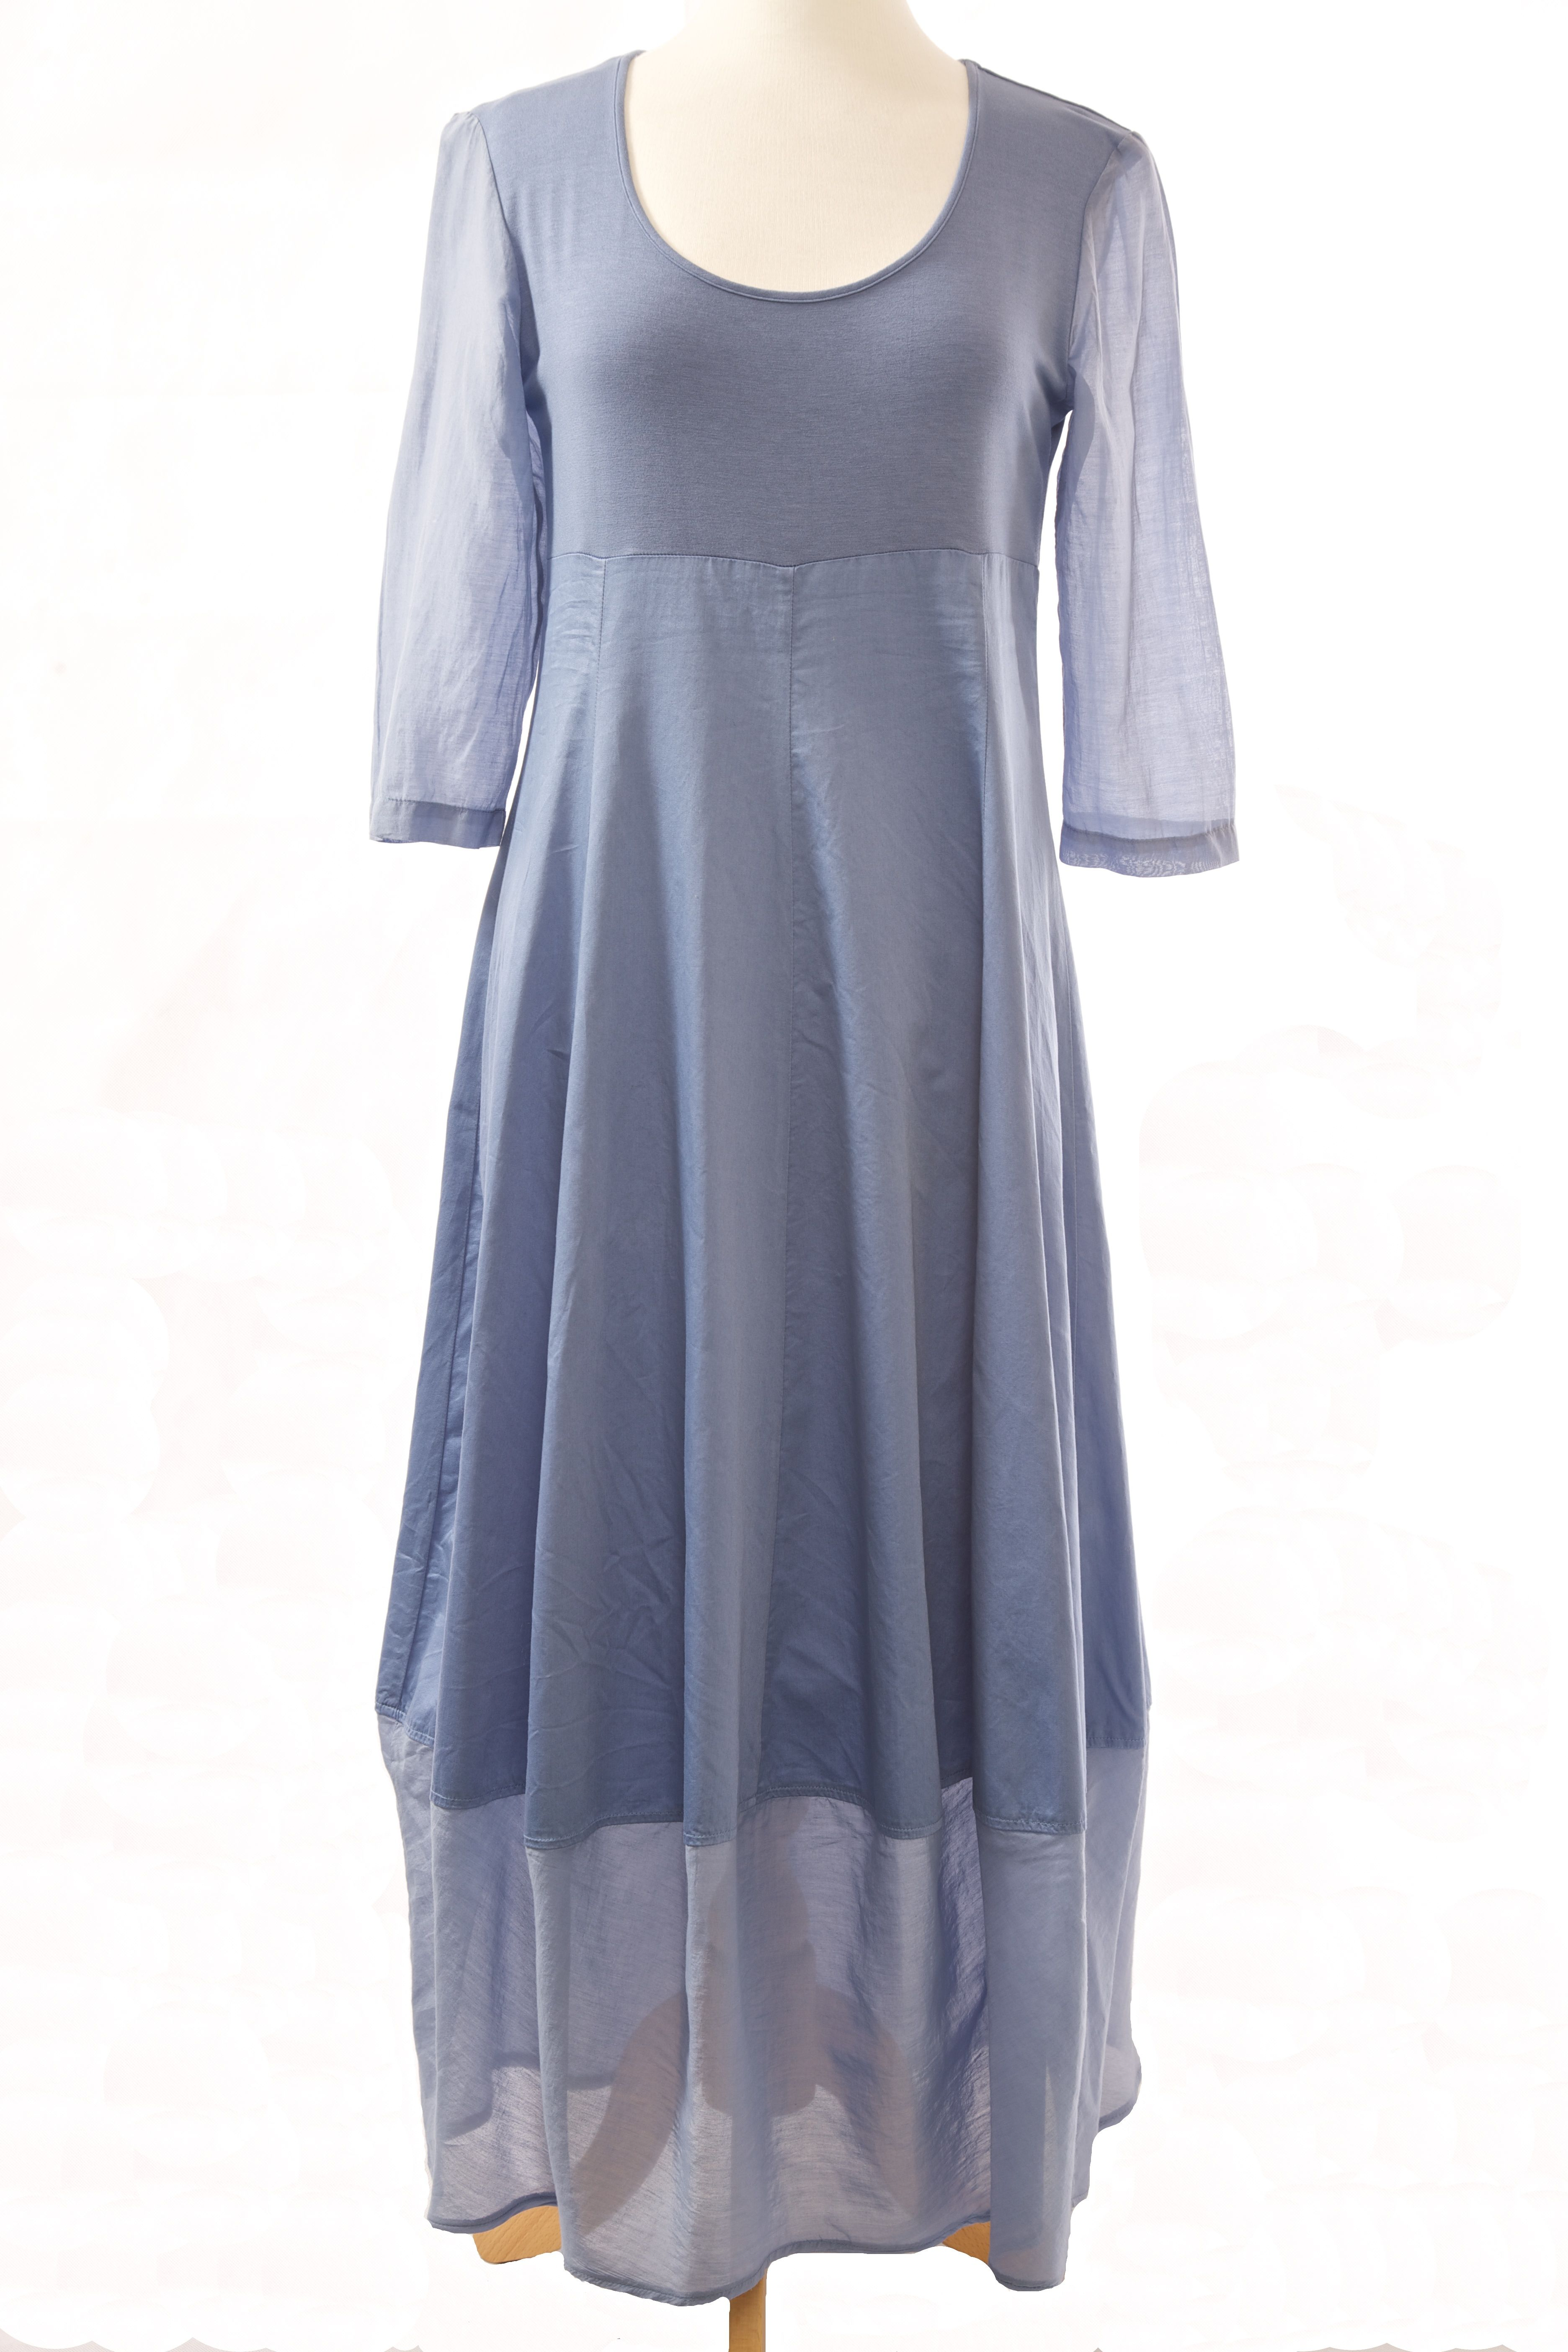 Cornflower blue maxi voile hem dress. Great sleeves in voile - two lengths, midi or maxi #outofxile #boutiquedresses #fashionboutique